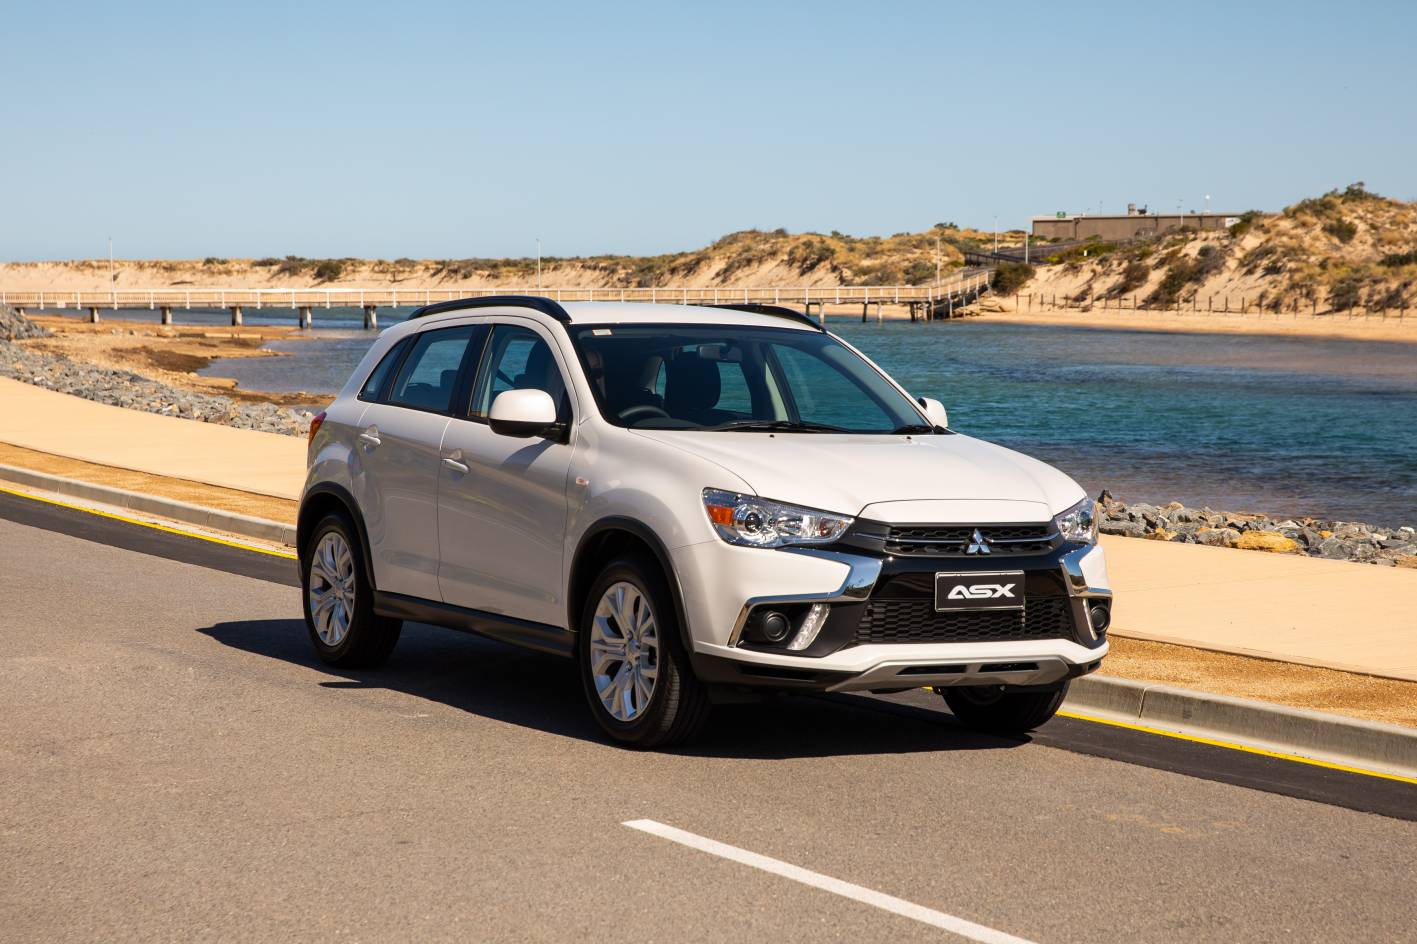 Mitsubishi's ASX SUV – our top-selling small SUV by a country mile